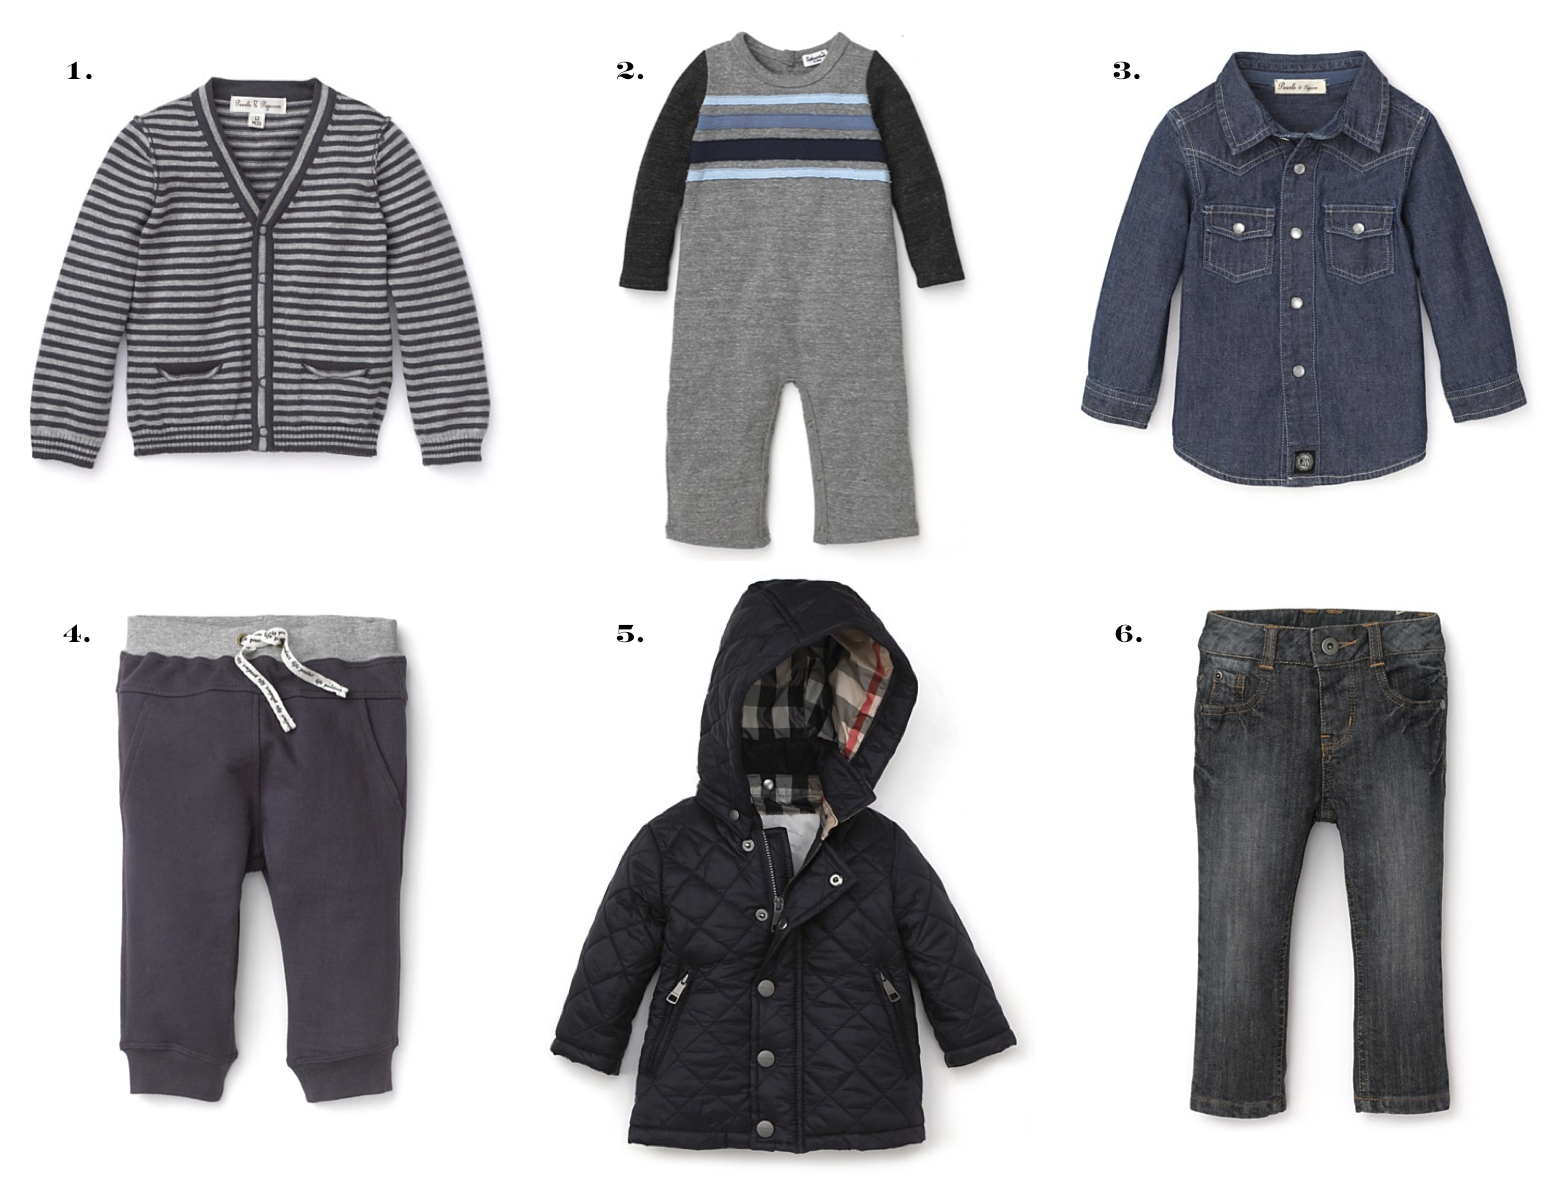 Baby Chic: Cute and Comfy Clothes for Babies